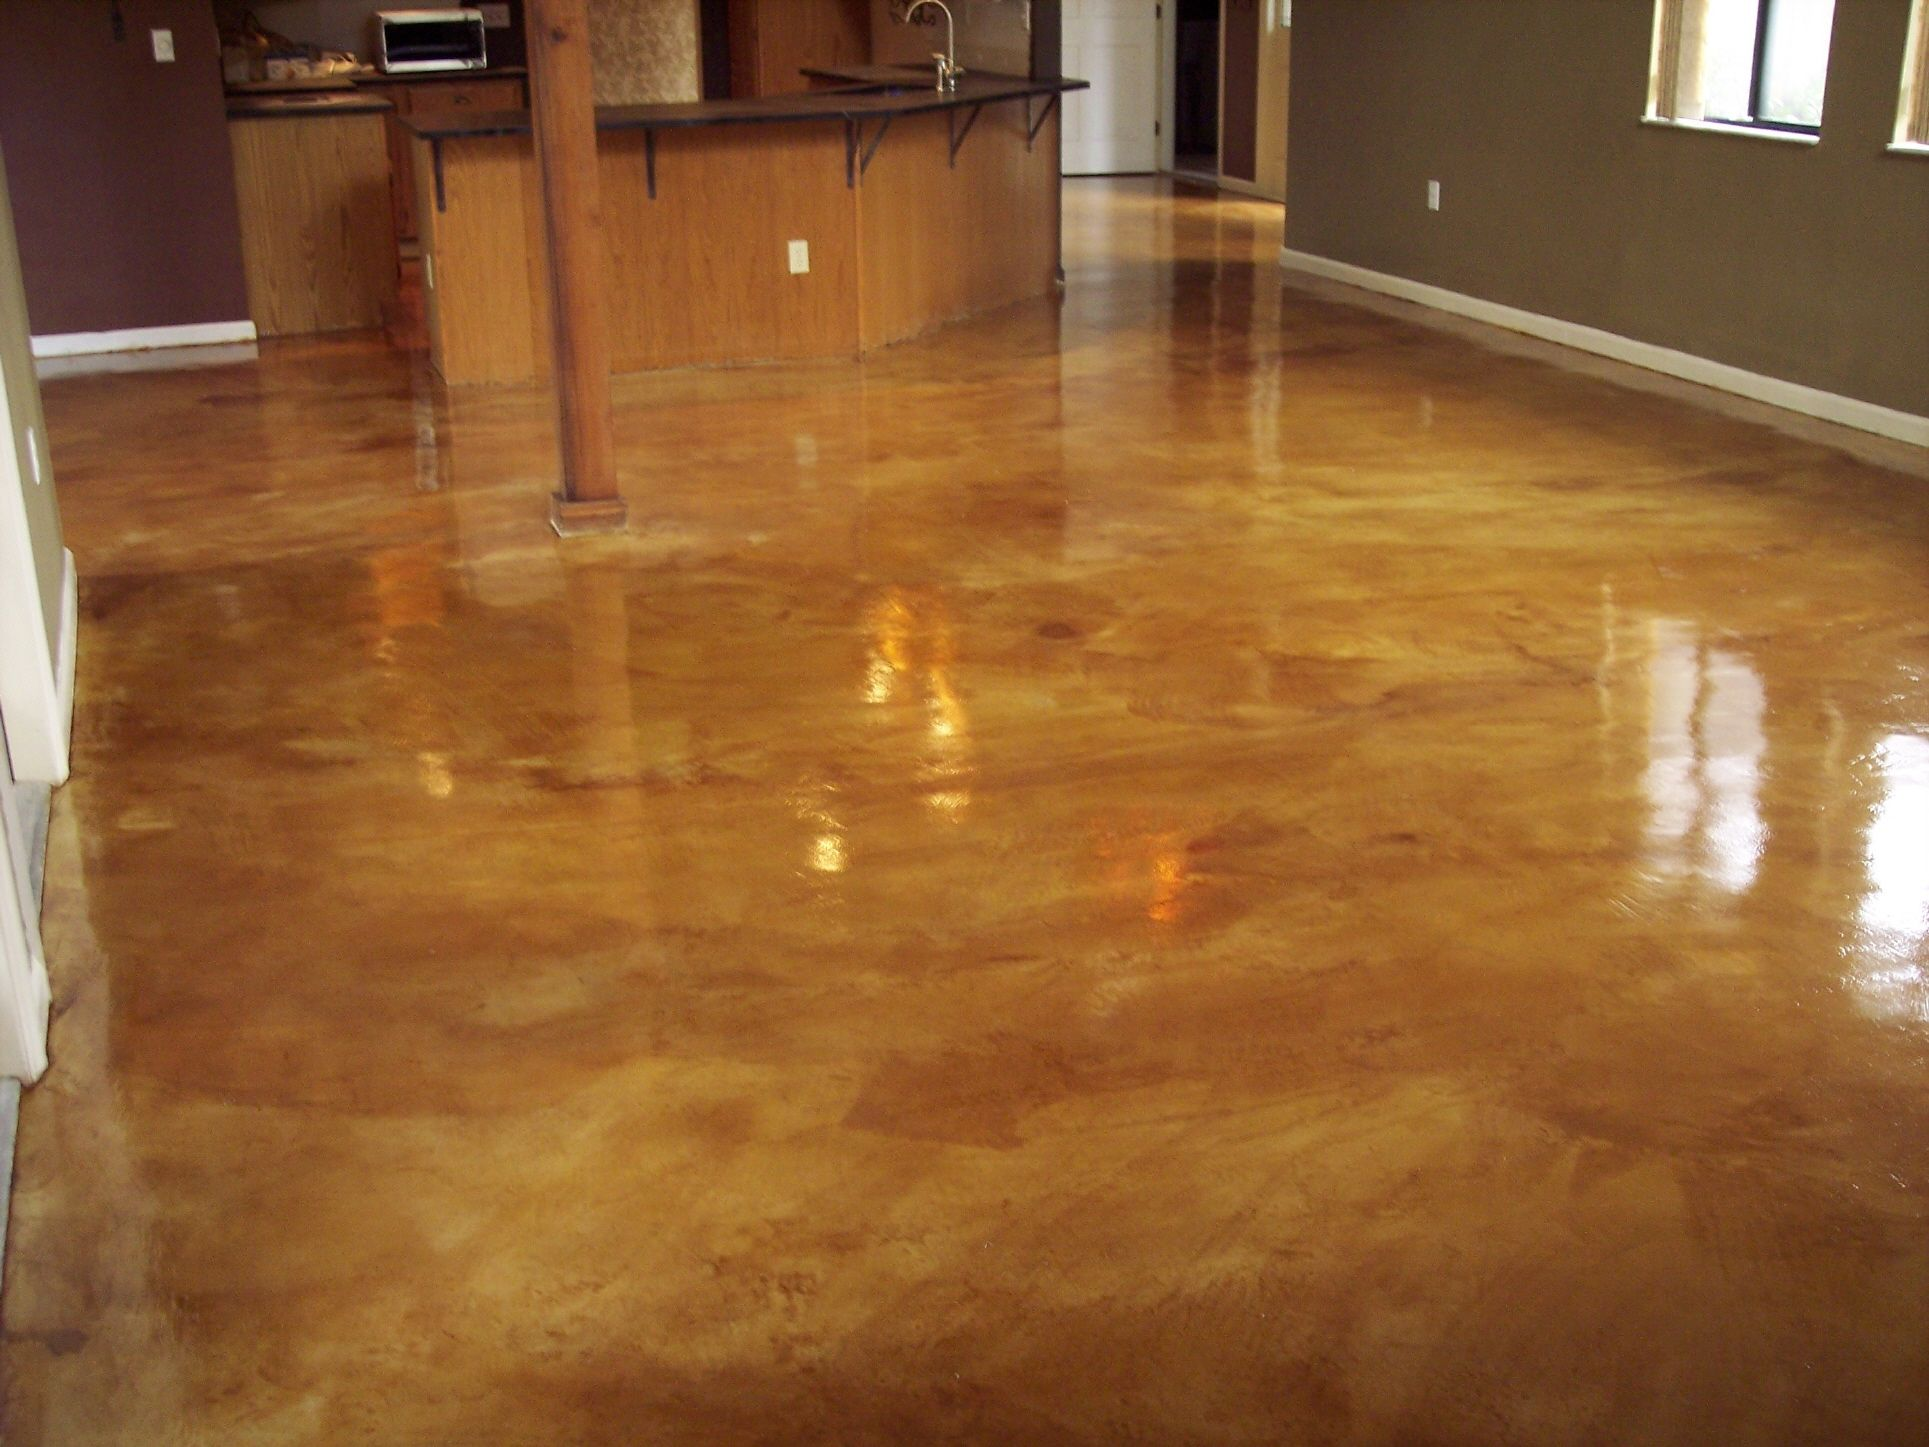 Stained cement floors chemical staining concrete for How to care for stained concrete floors